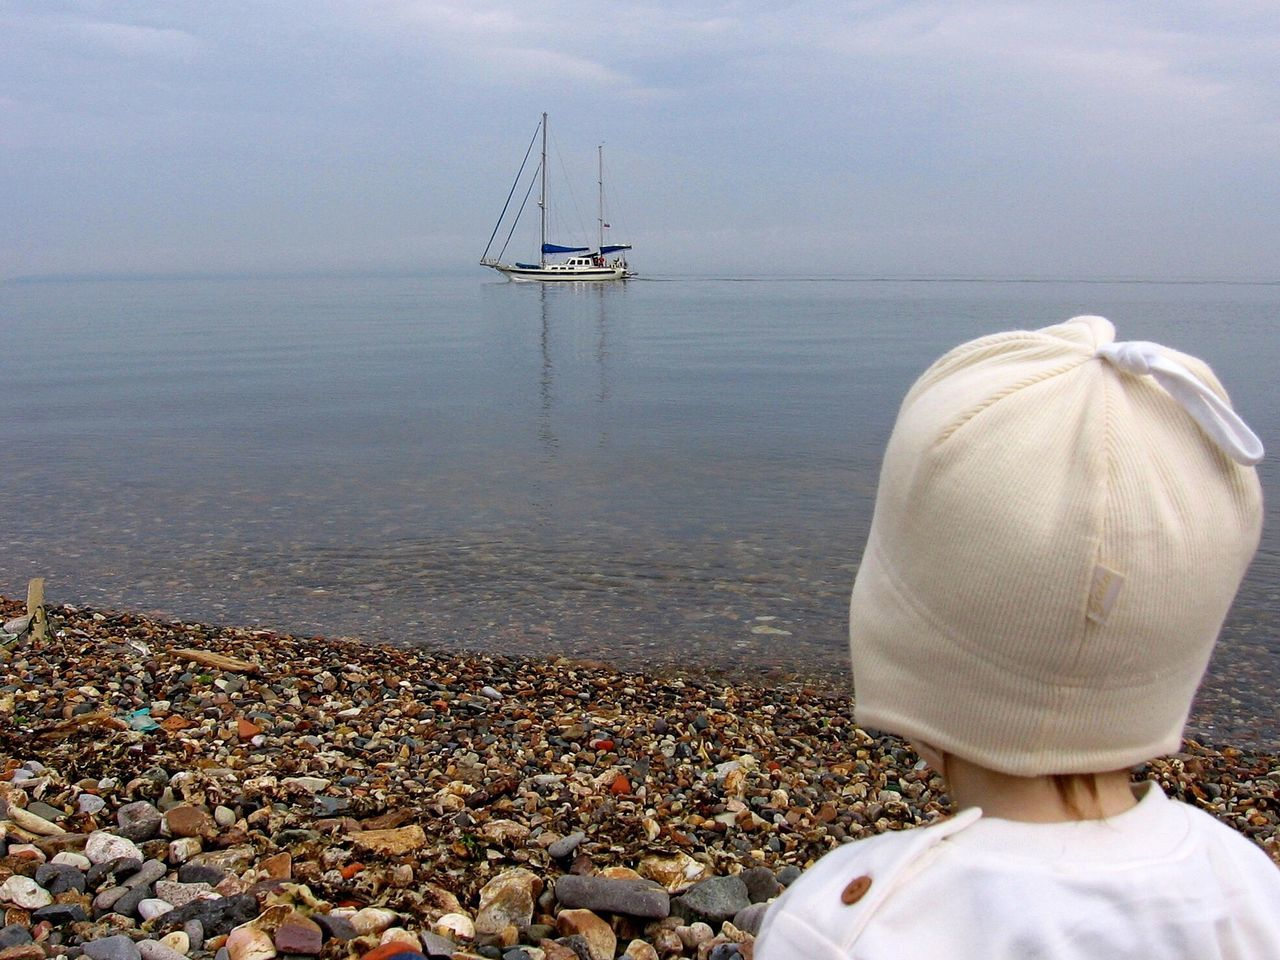 Enchanted baby at the seaside Feel The Journey Beach Stones Seascape Calm Sailer Charm Dream People Of The Oceans